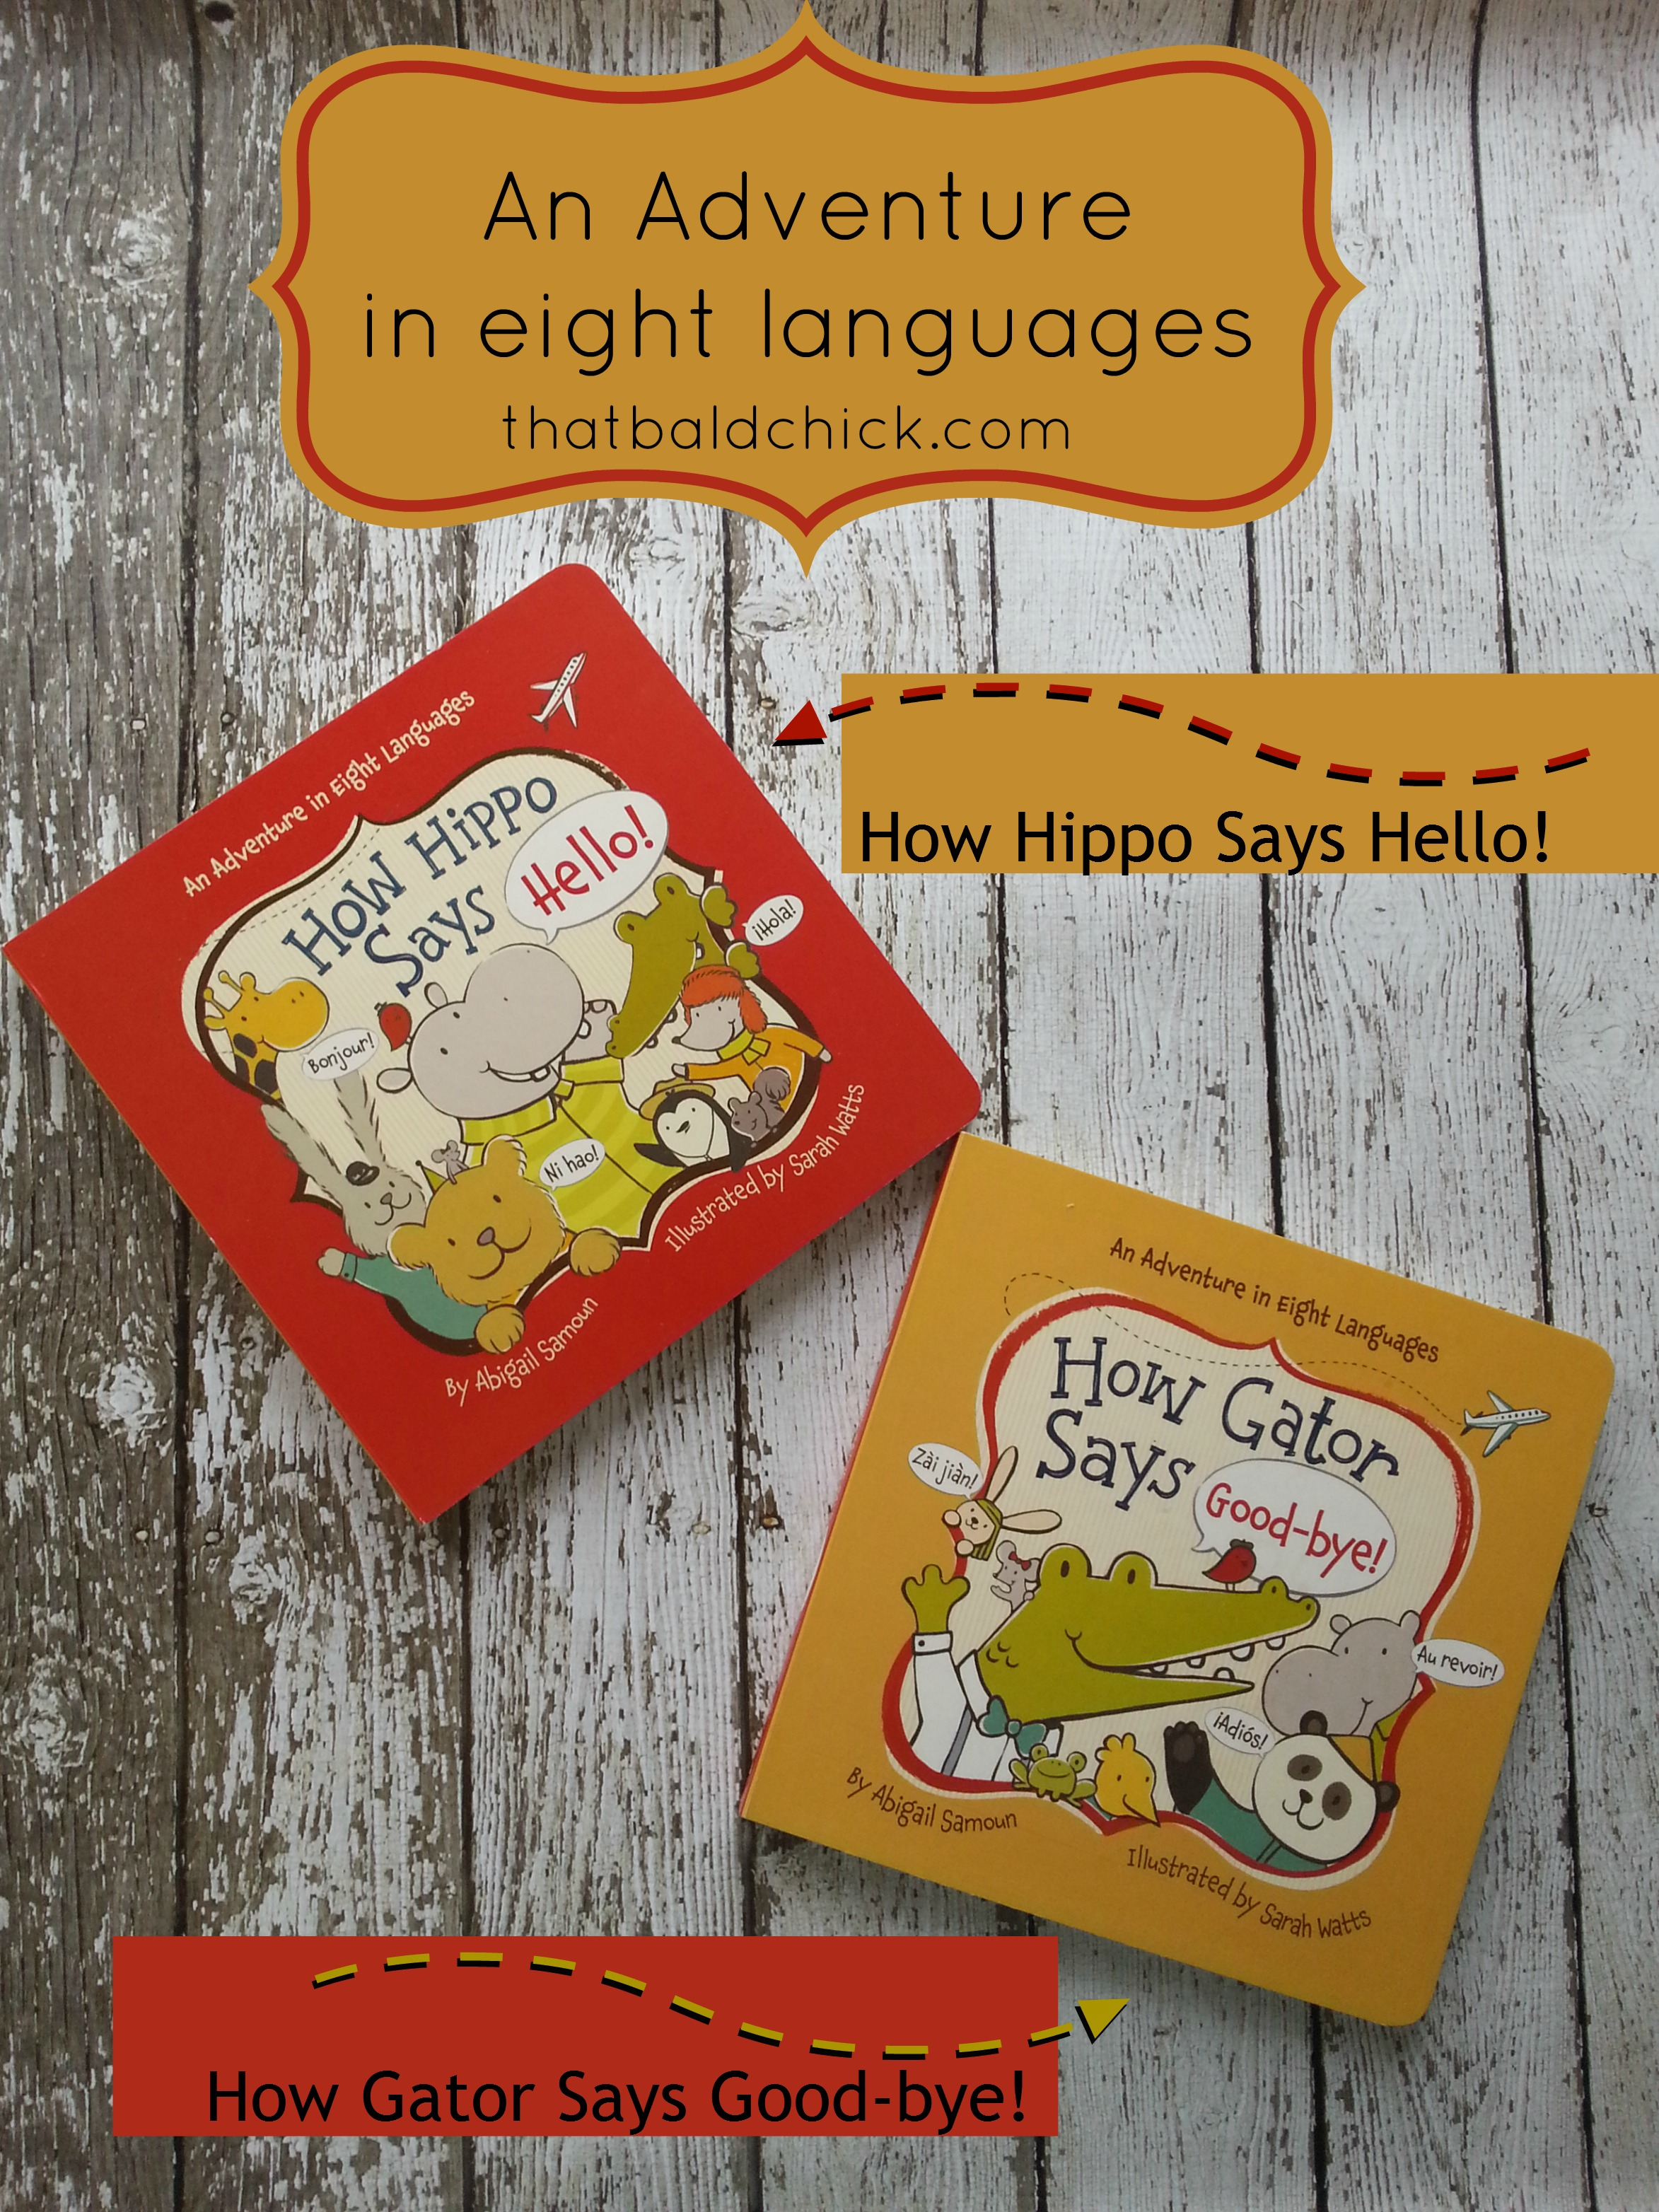 how hippo says hello and how gator says good-bye